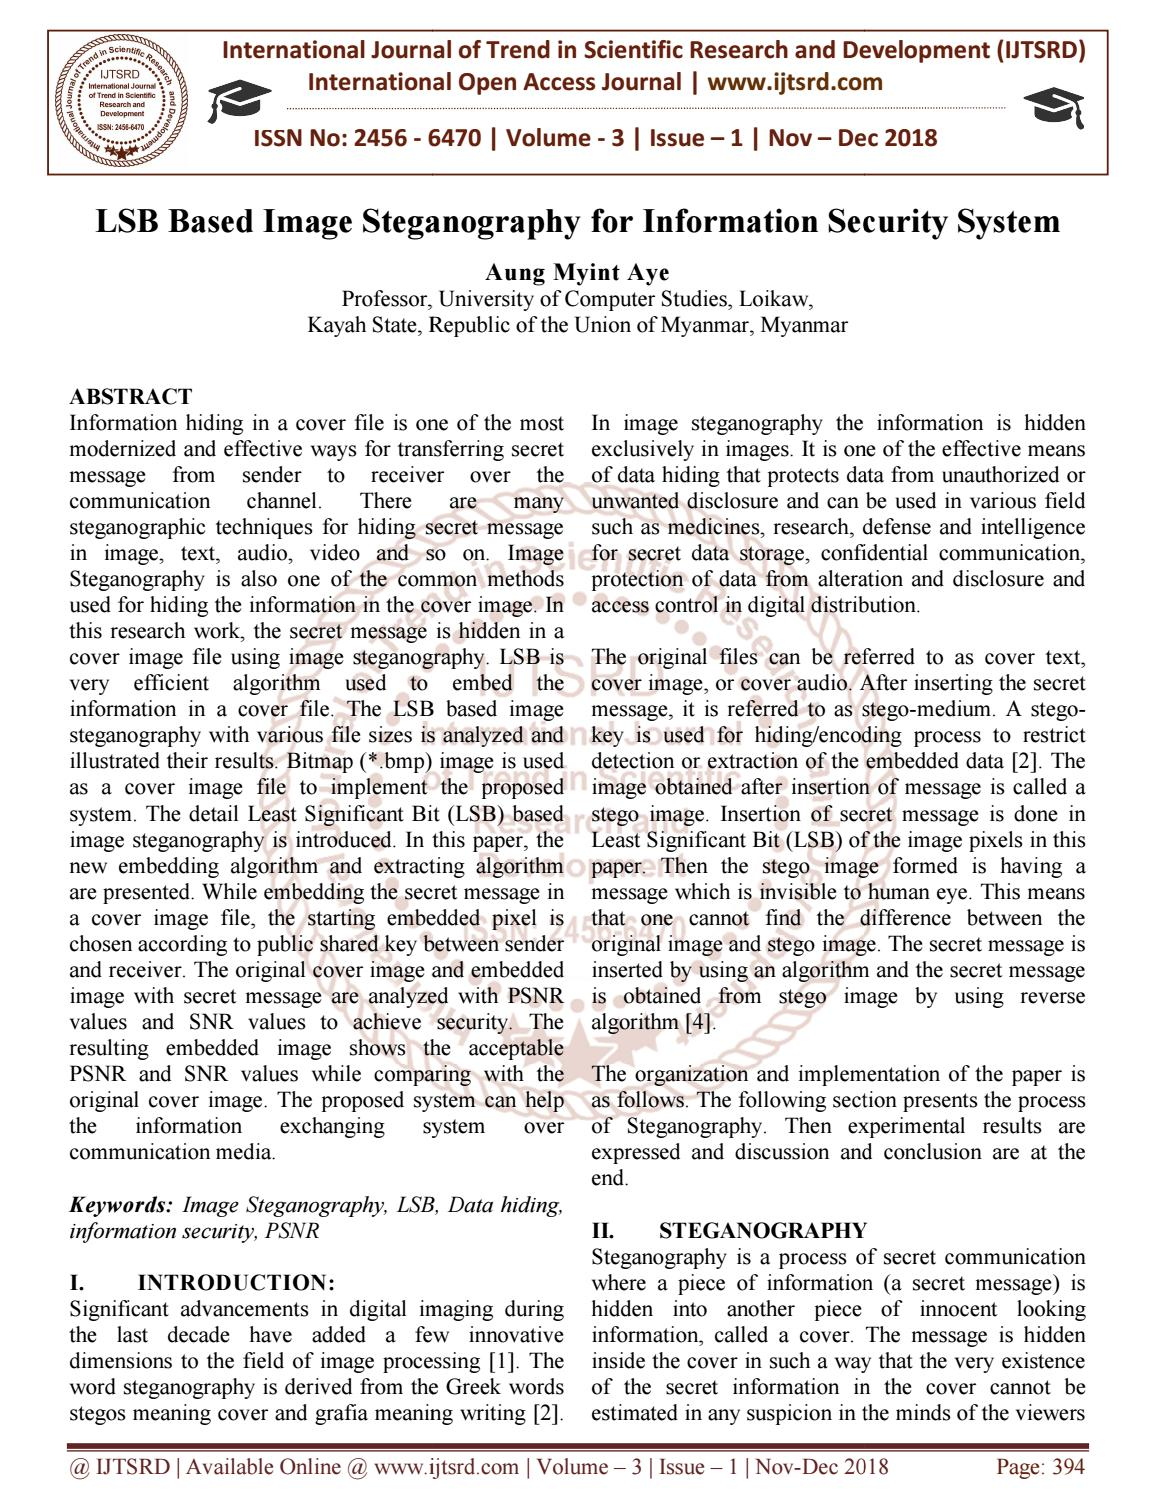 LSB Based Image Steganography for Information Security System by